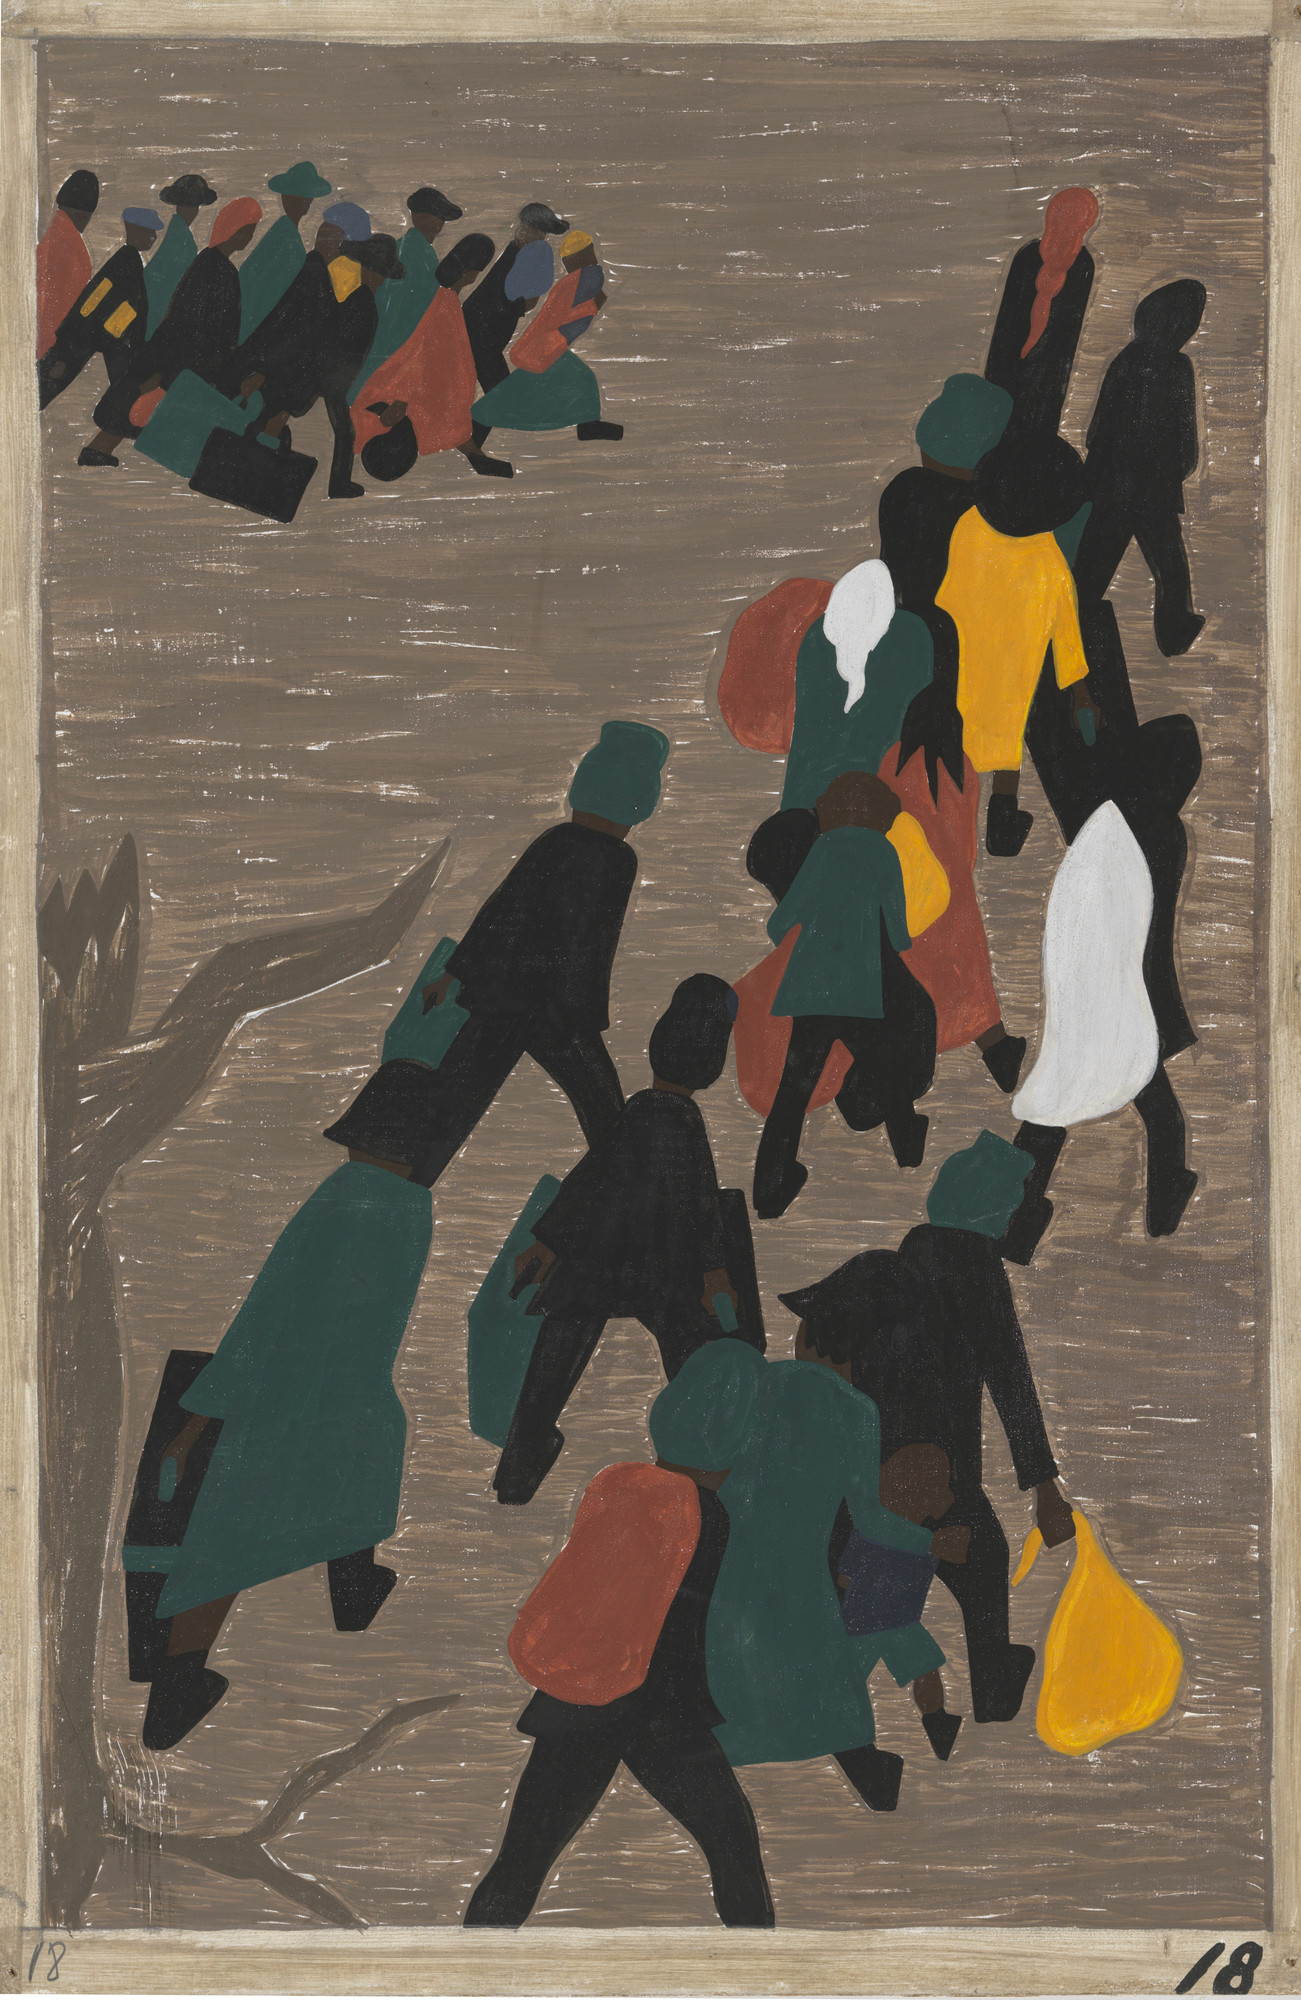 Jacob Lawrence. The migration gained in momentum. 1940-41